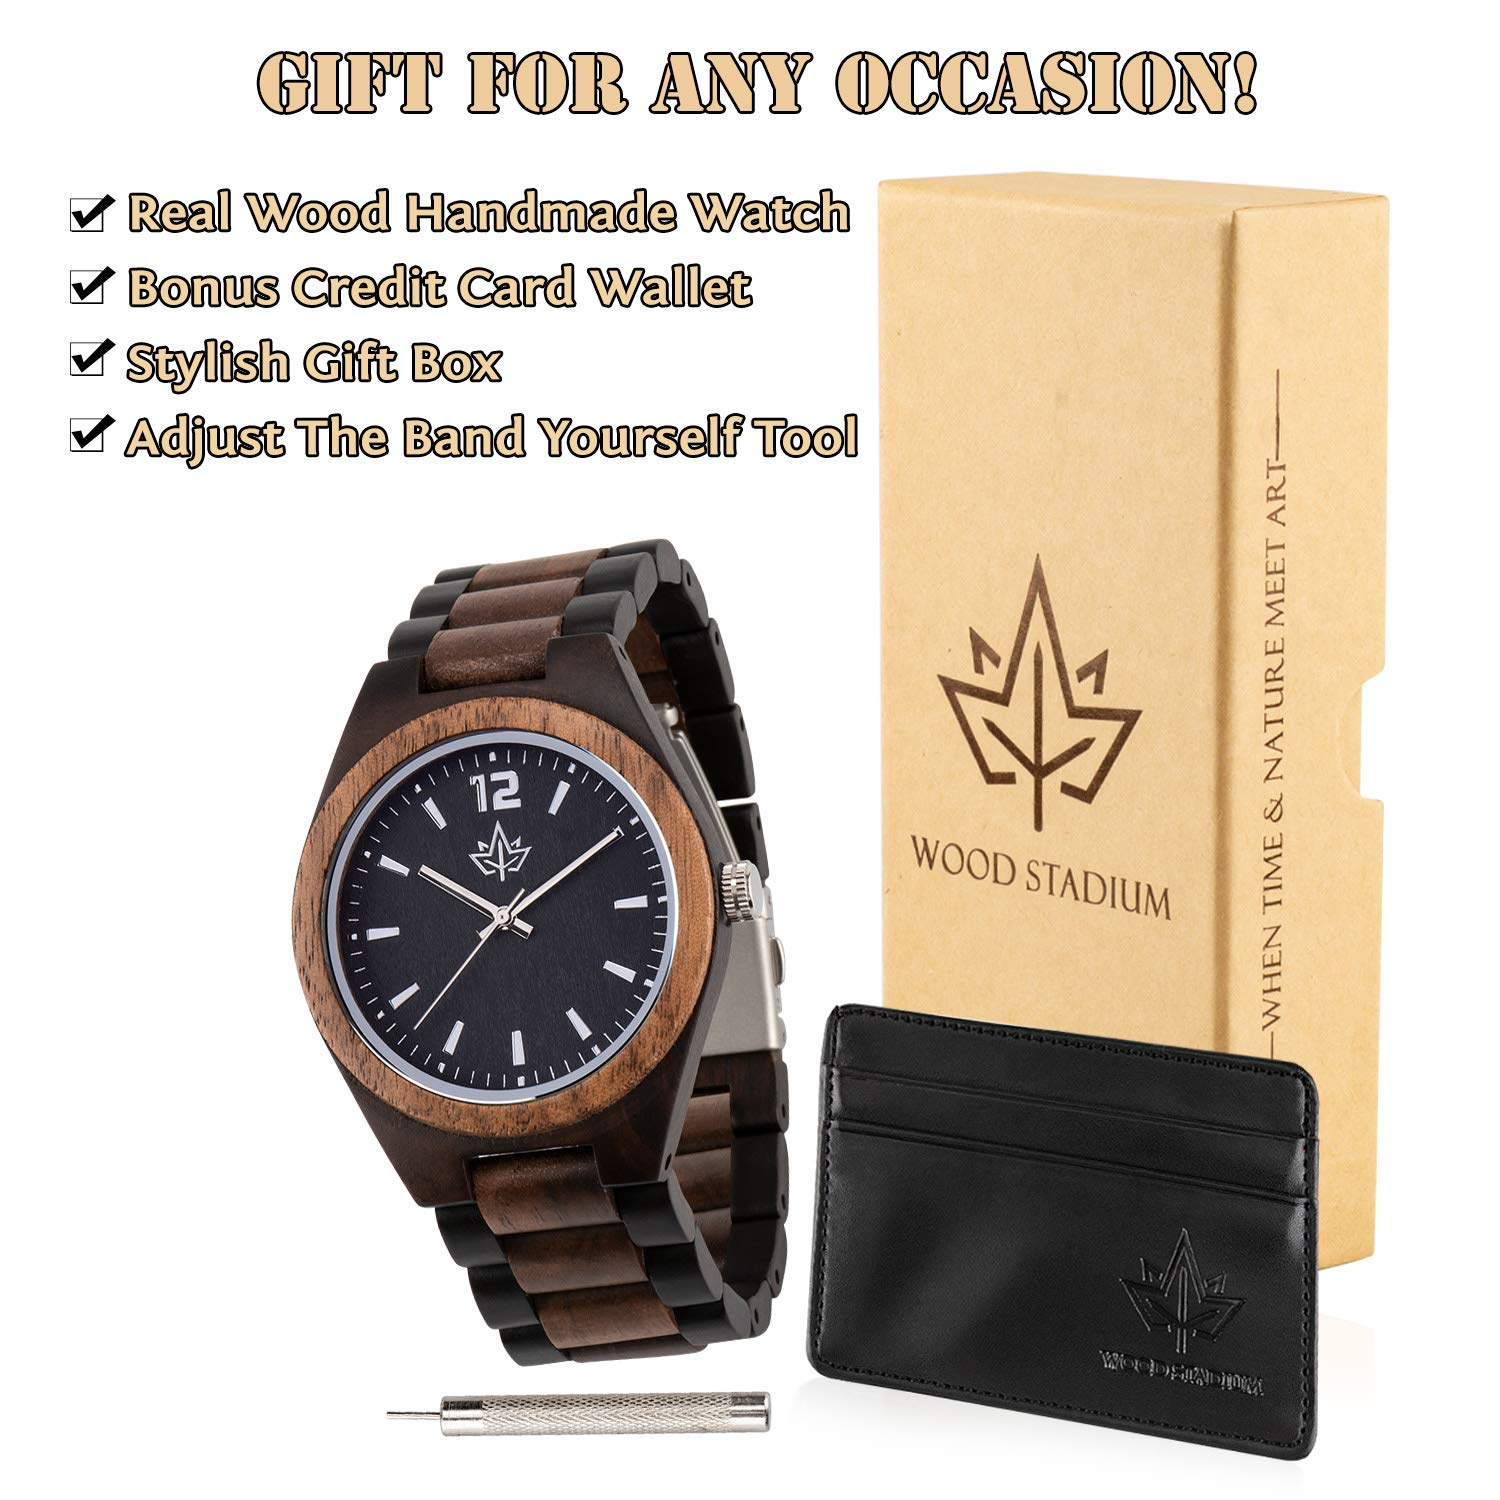 Wooden Watch for Men - Watch and Strap Made of Walnut and Ebony. Large Easy to Read Face. Japanese Quartz Movement. Casual and Sporty. Bonus Credit Card Holder in a Stylish Gift Box. by Wood Stadium